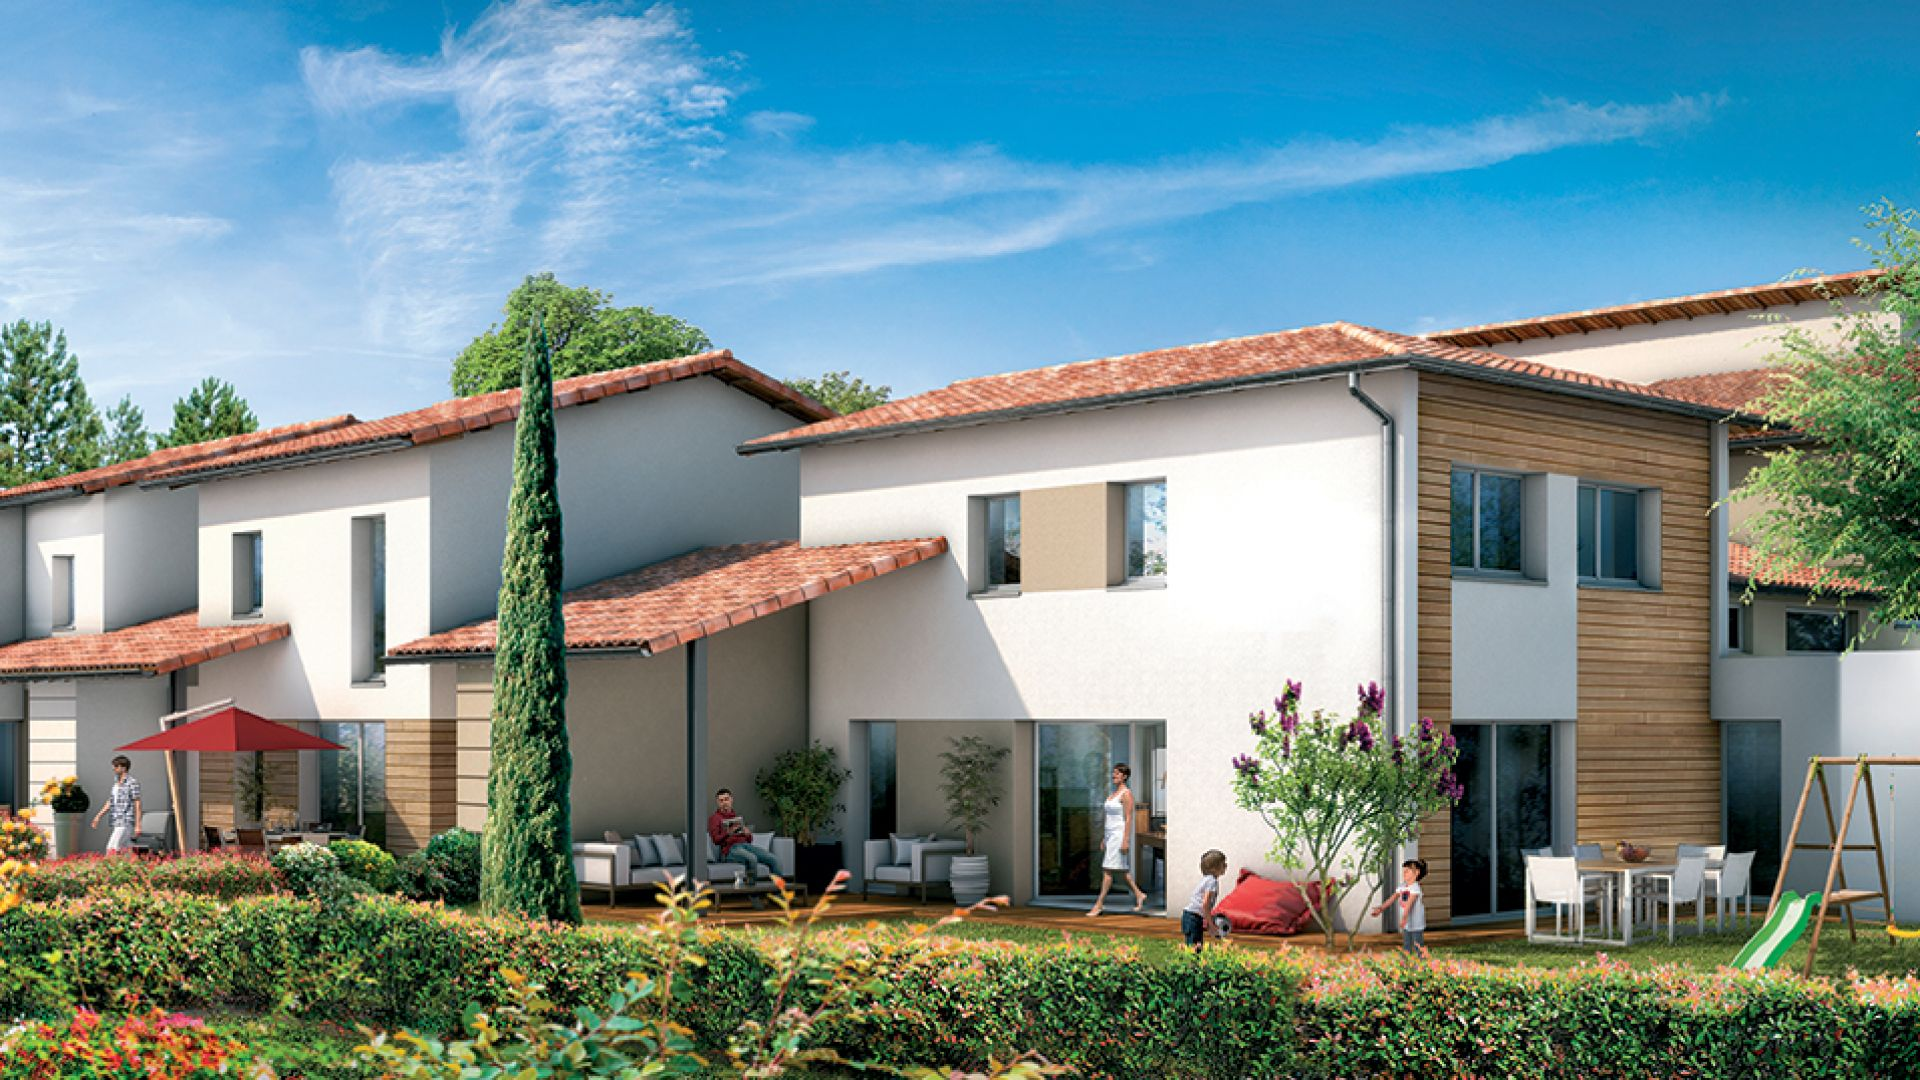 Residence cote canal 2 green city immobilier for Residence immobilier